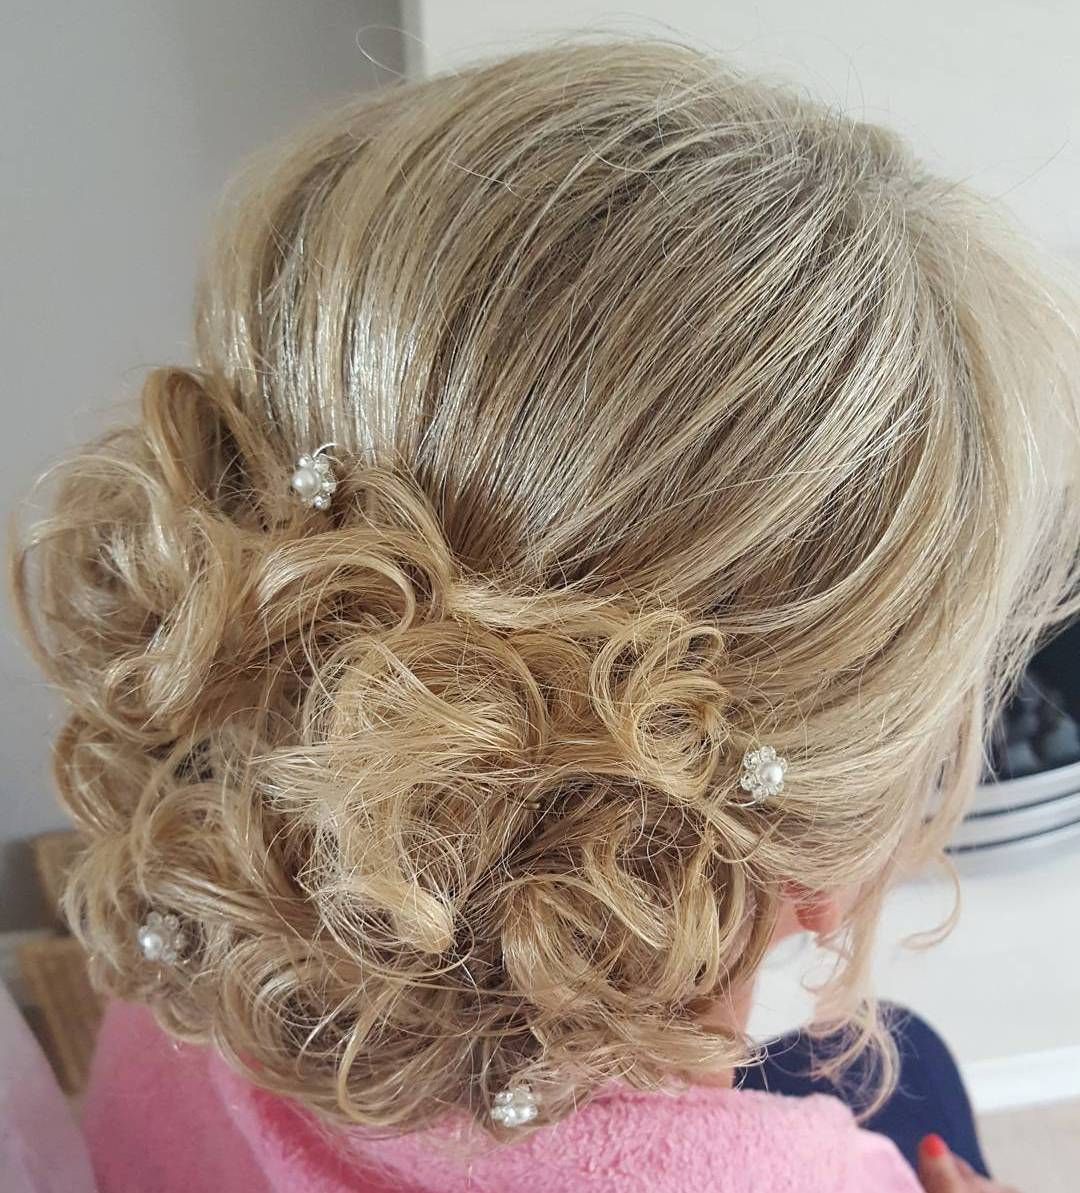 Bride Hairstyles: 50 Ravishing Mother Of The Bride Hairstyles